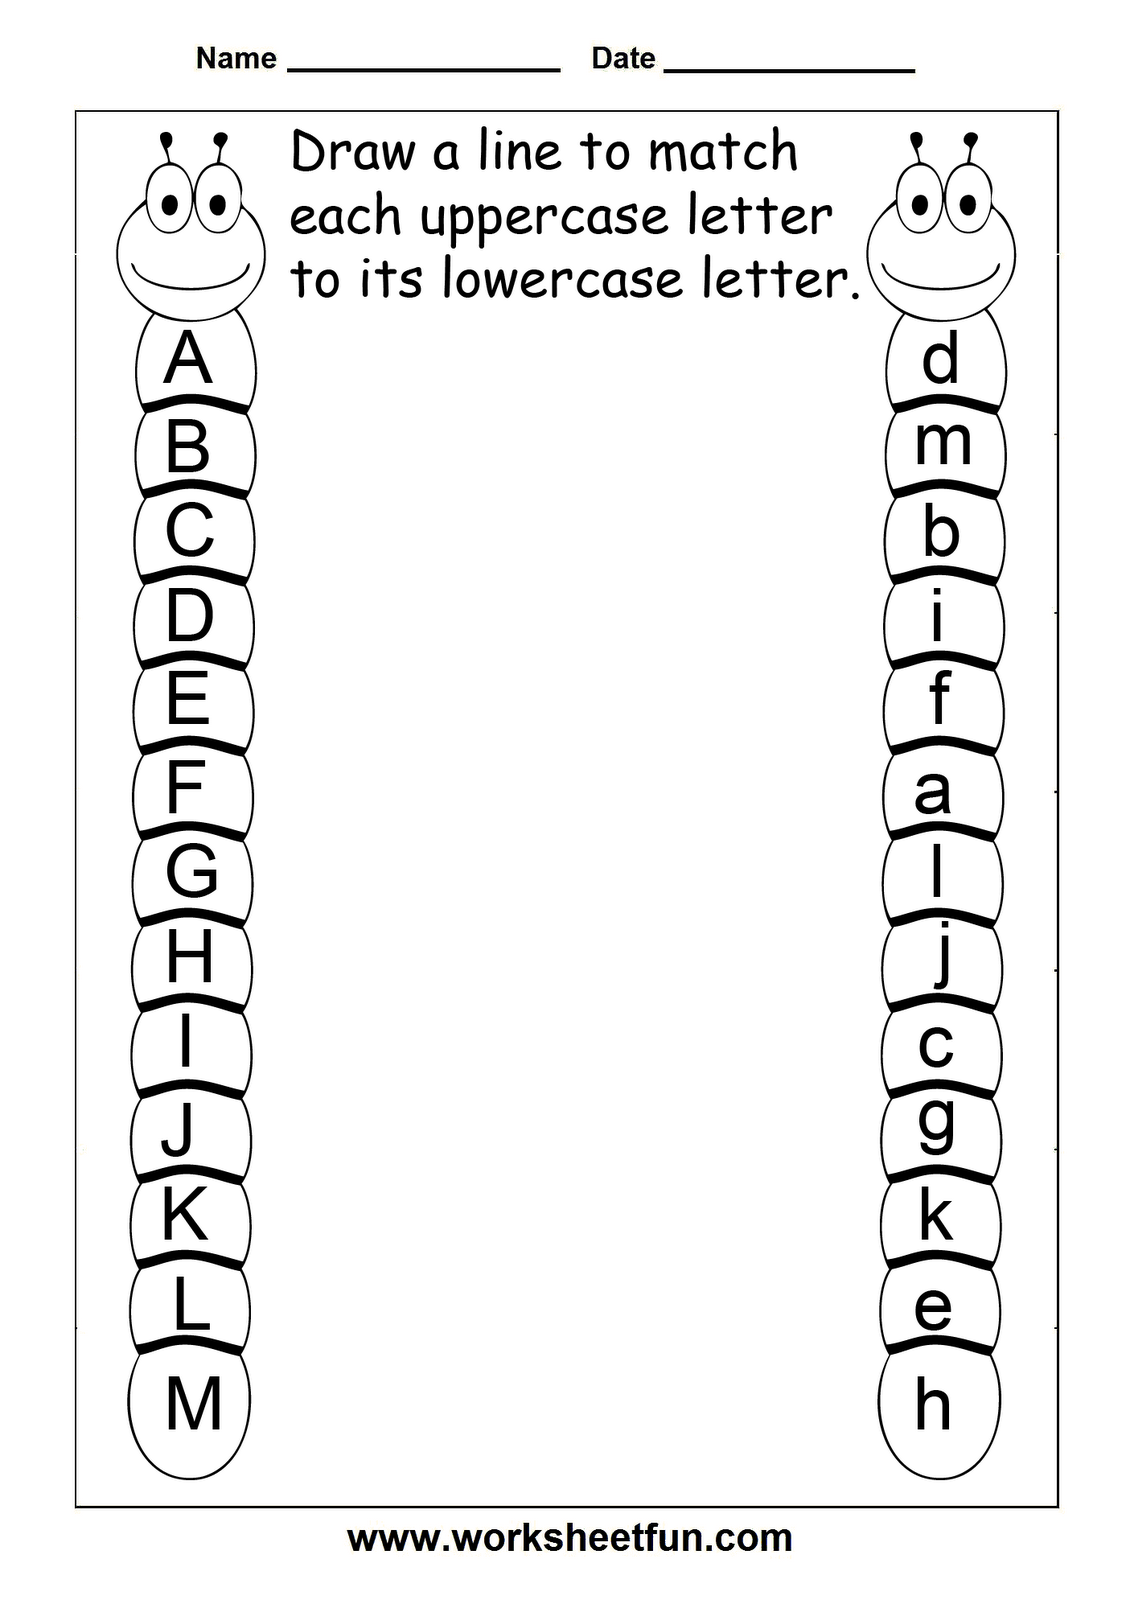 Worksheets Abc Worksheet For Preschool do you love children why not volunteer with via volunteers in south africa and make free printable worksheetsabc